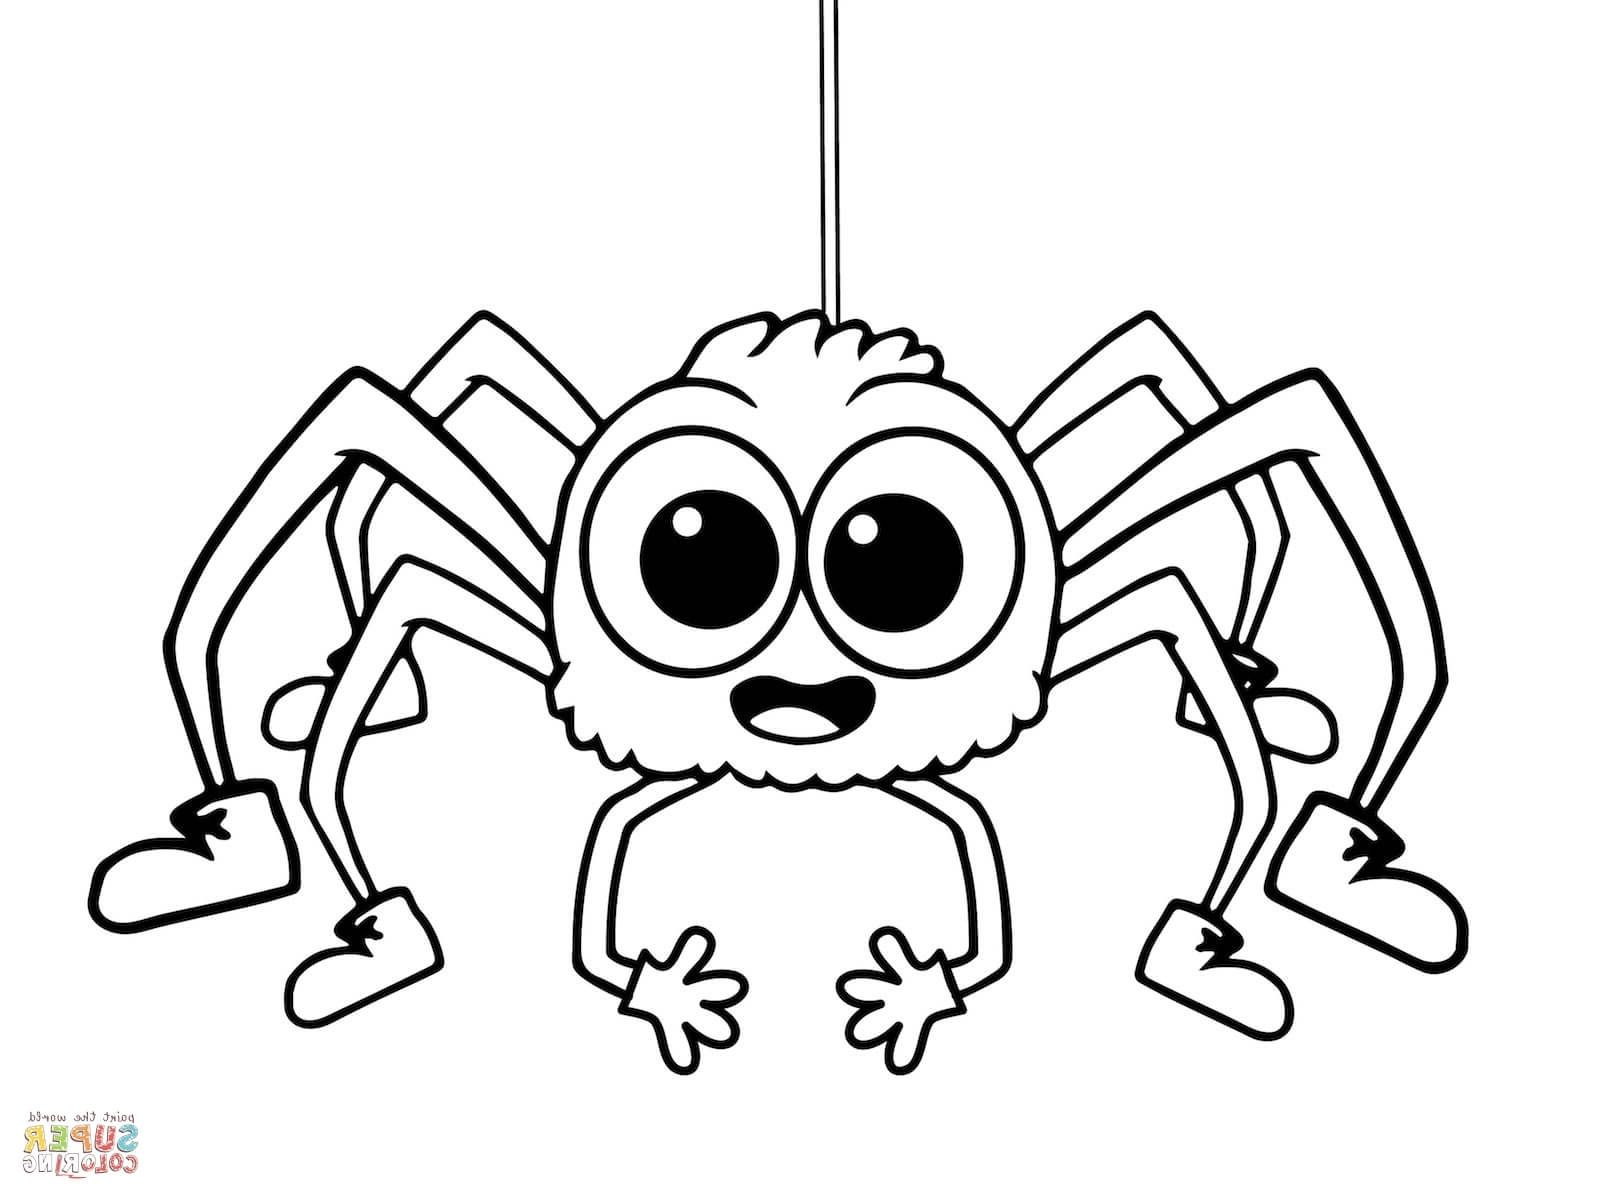 coloring page itsy bitsy spider coloring pages itsy bitsy spider live speakaboos coloring bitsy spider itsy page